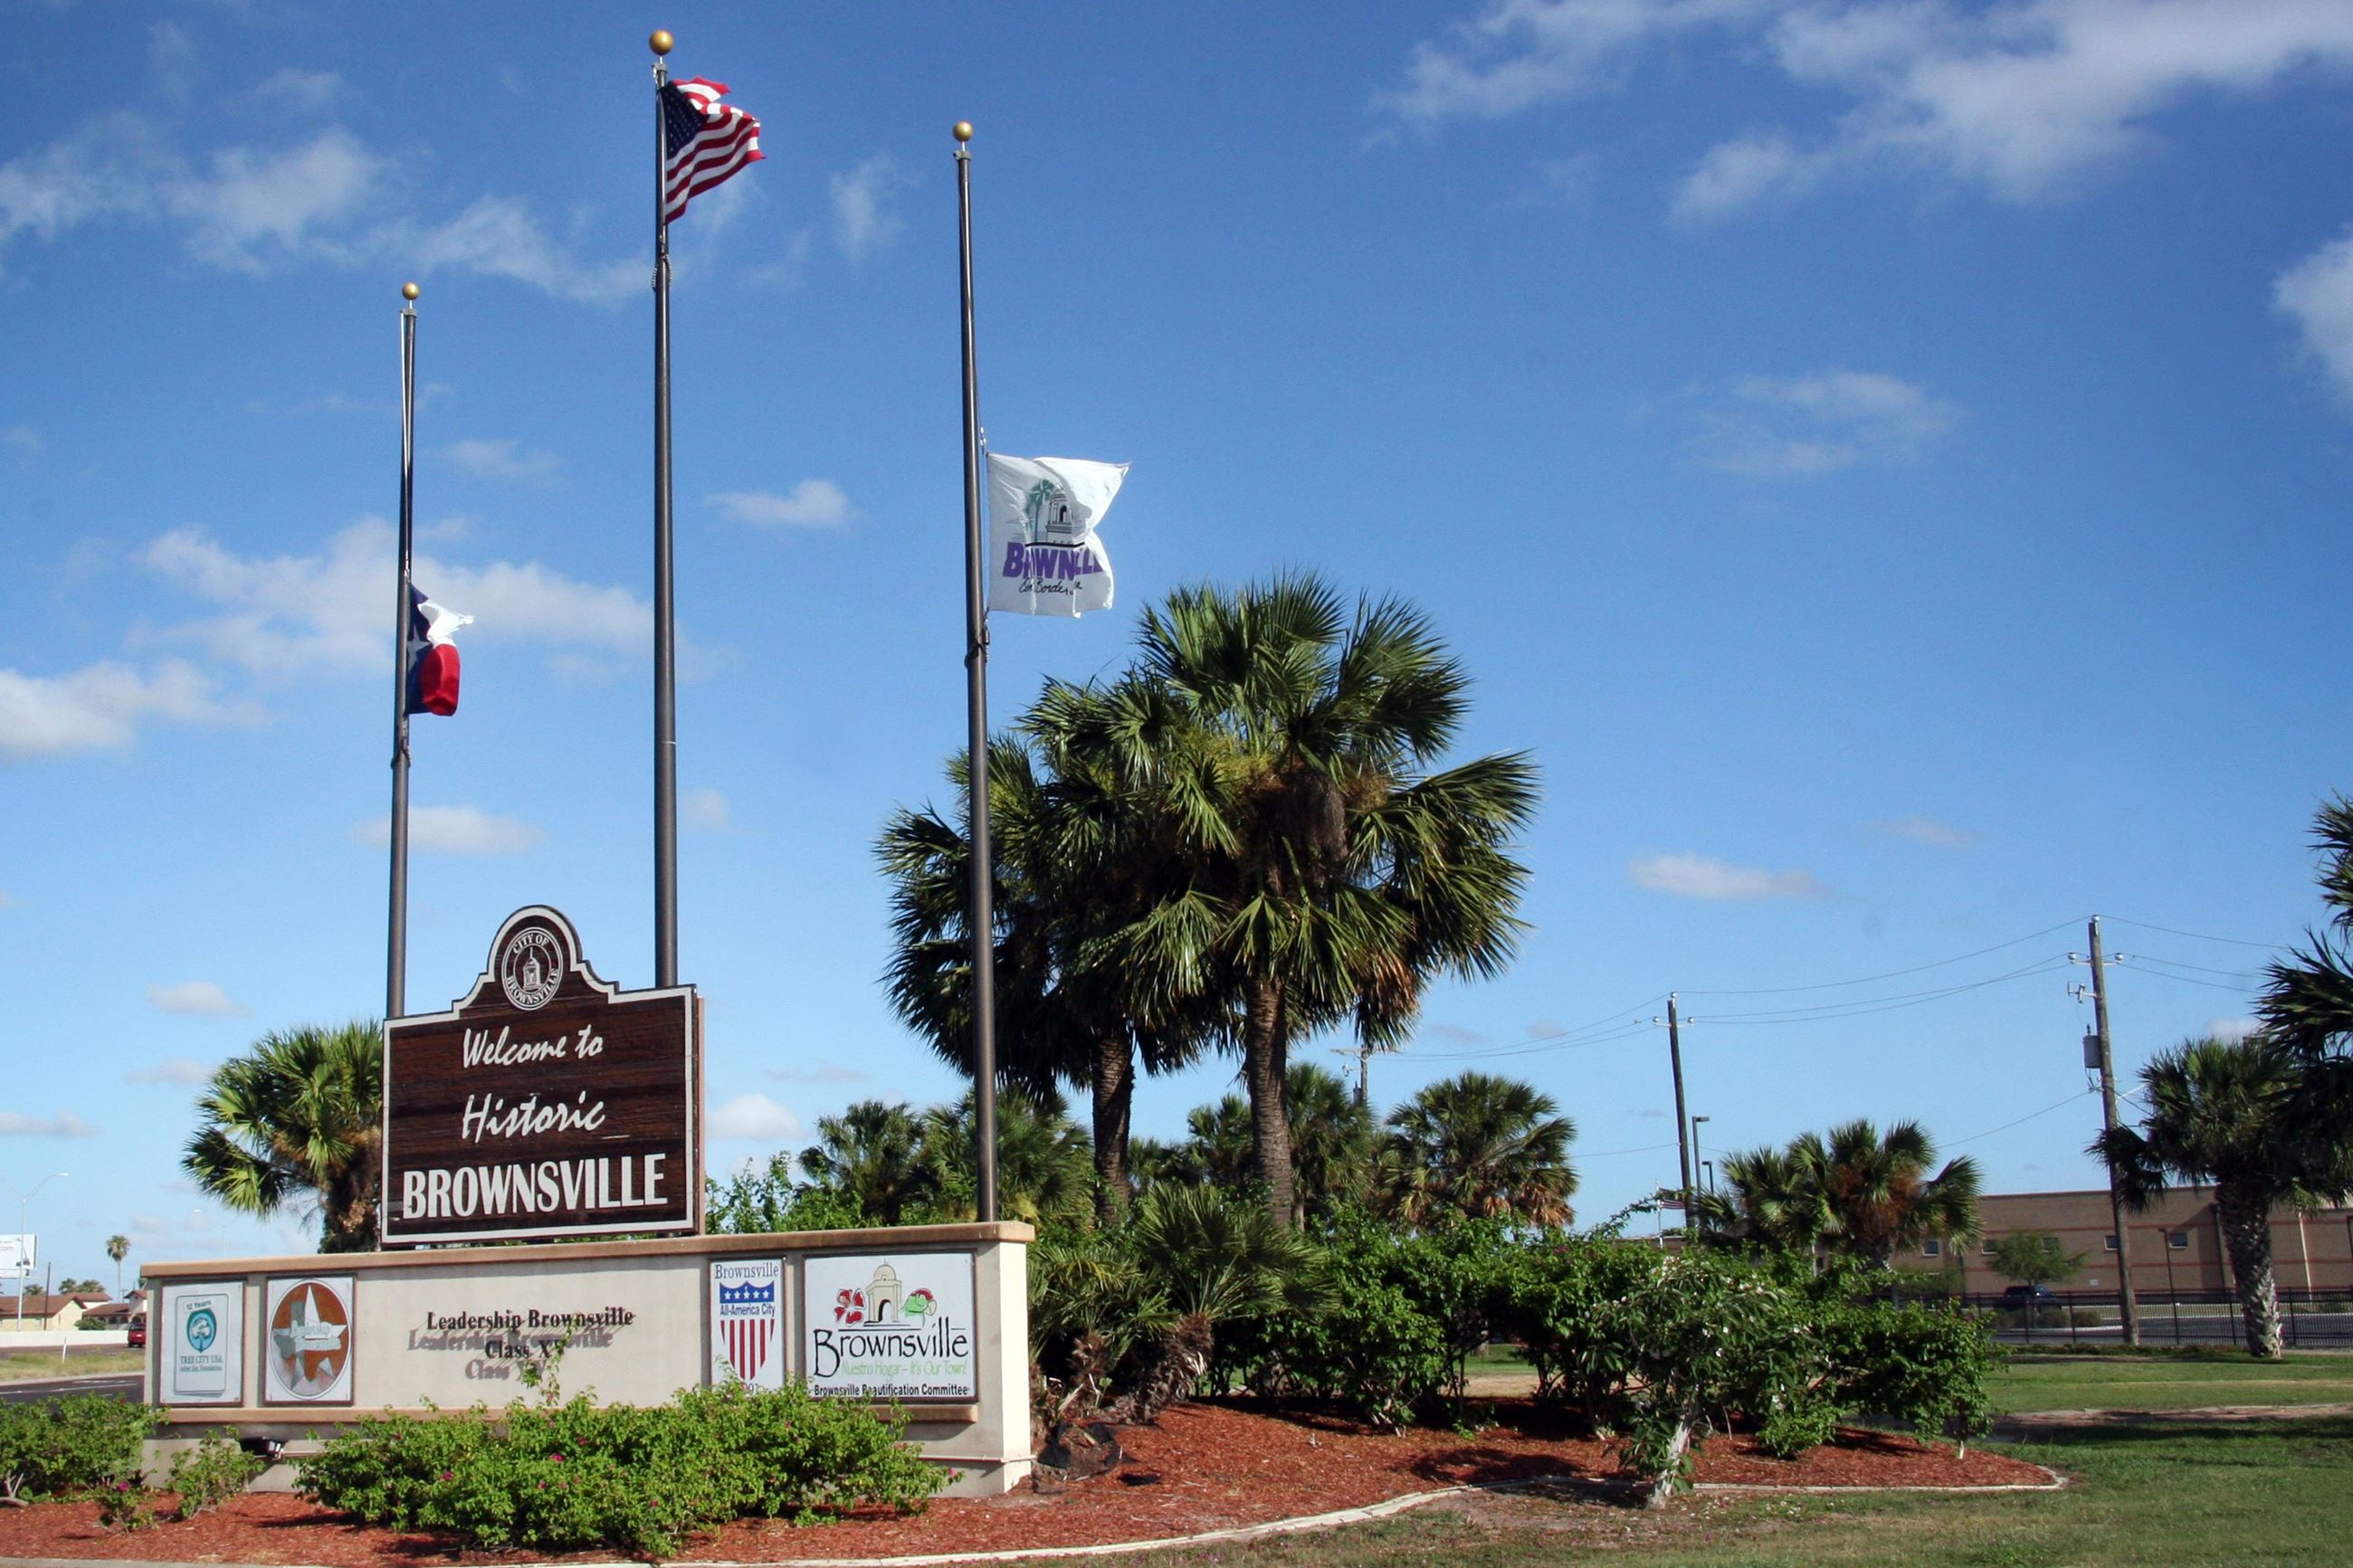 The Welcome to Brownsville sign with three flags and trees behind it.